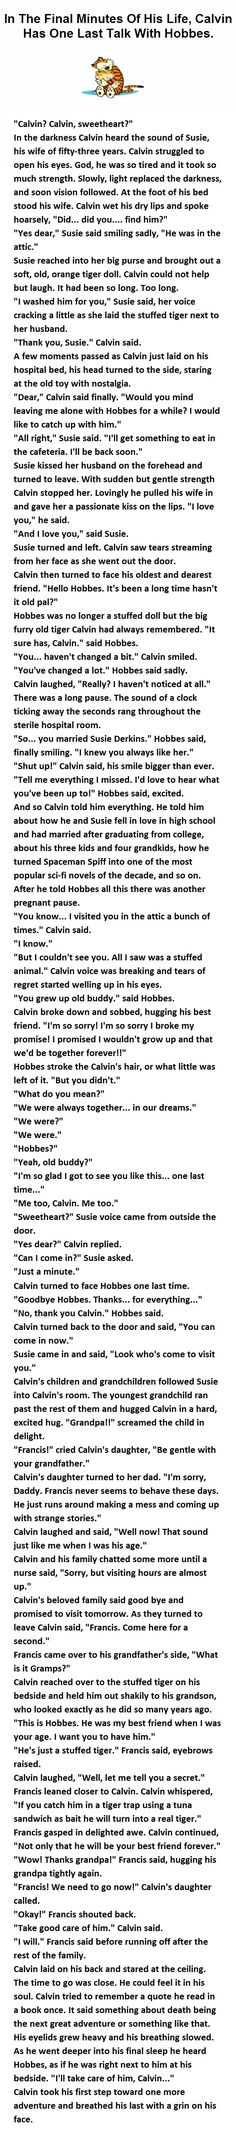 In the final minutes of his life, Calvin has one last talk with Hobbes... #CalvinandHobbes